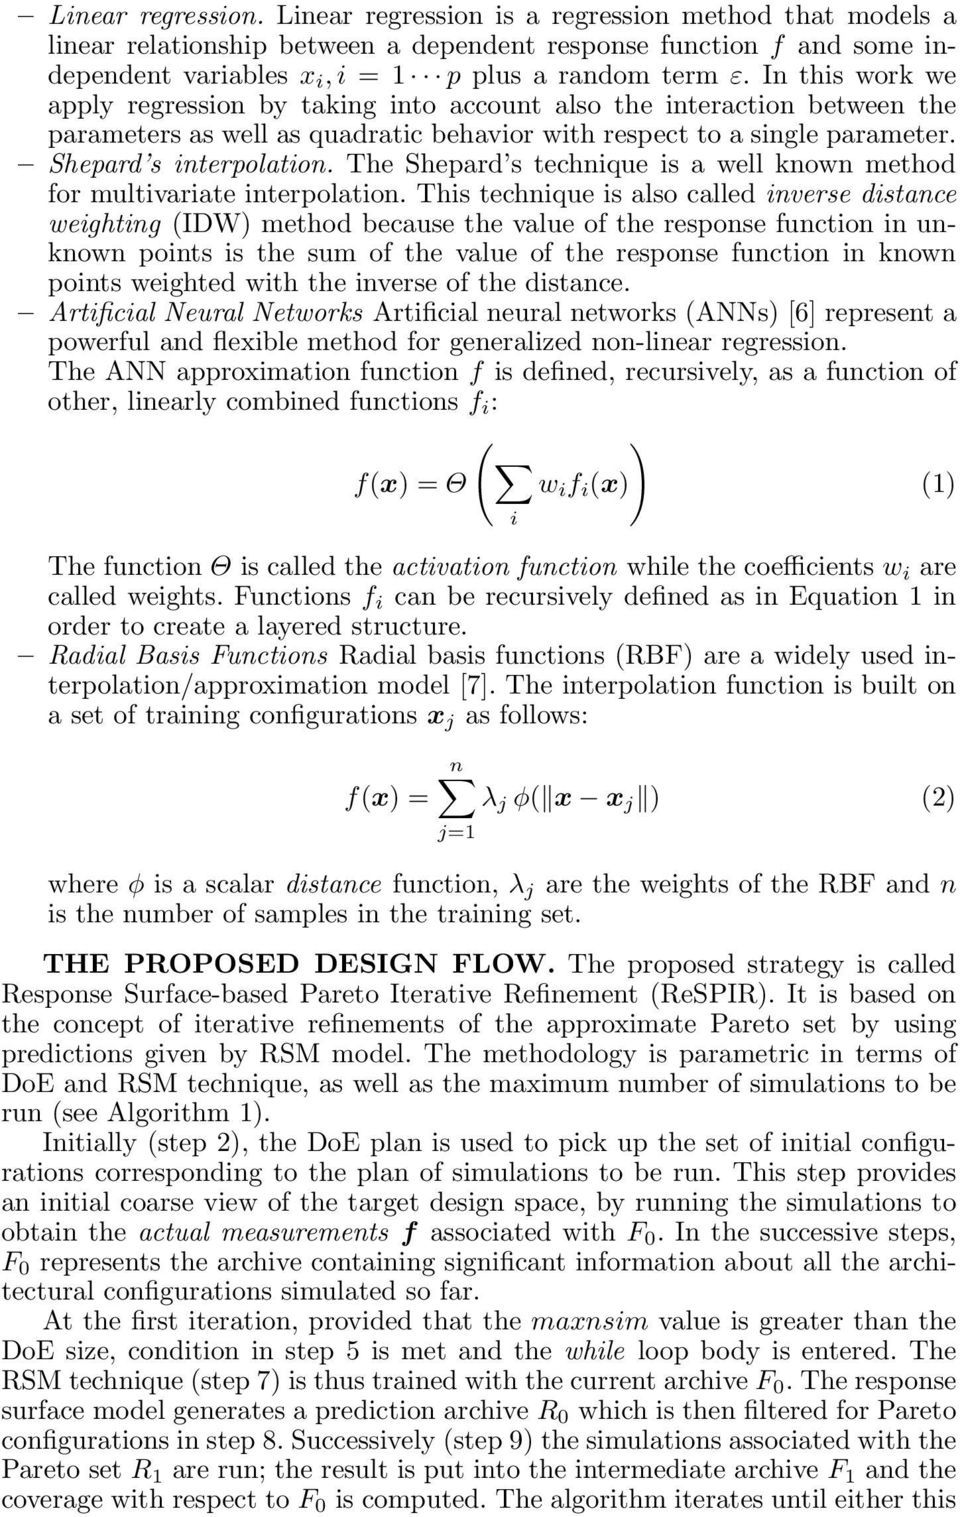 The Shepard s technique is a well known method for multivariate interpolation.